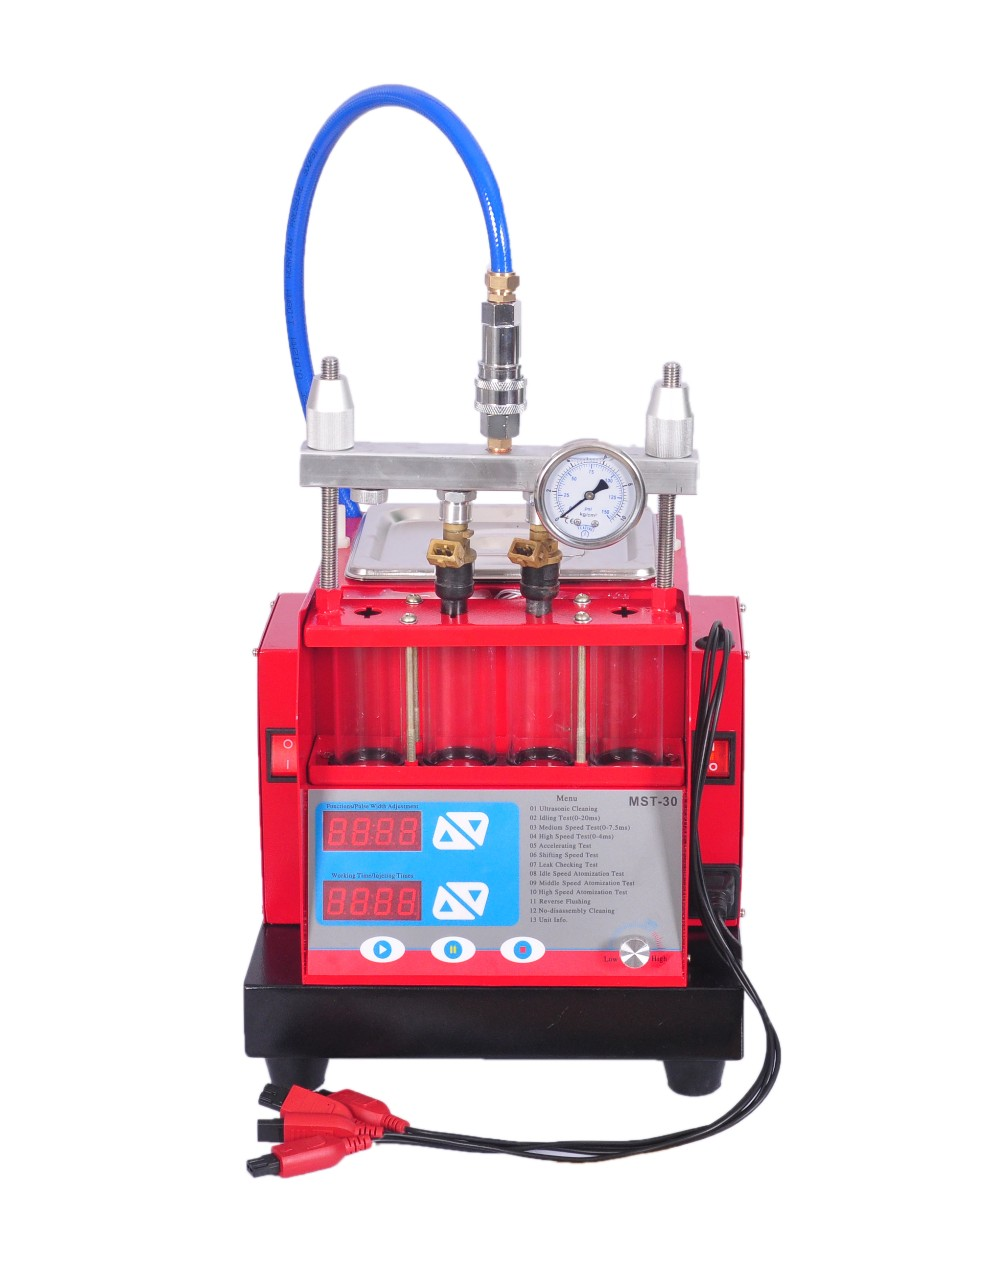 Auto Ultrasonic cleaning Machine Fuel Injector tester and Cleaner MST-30 four 4 Cylinder